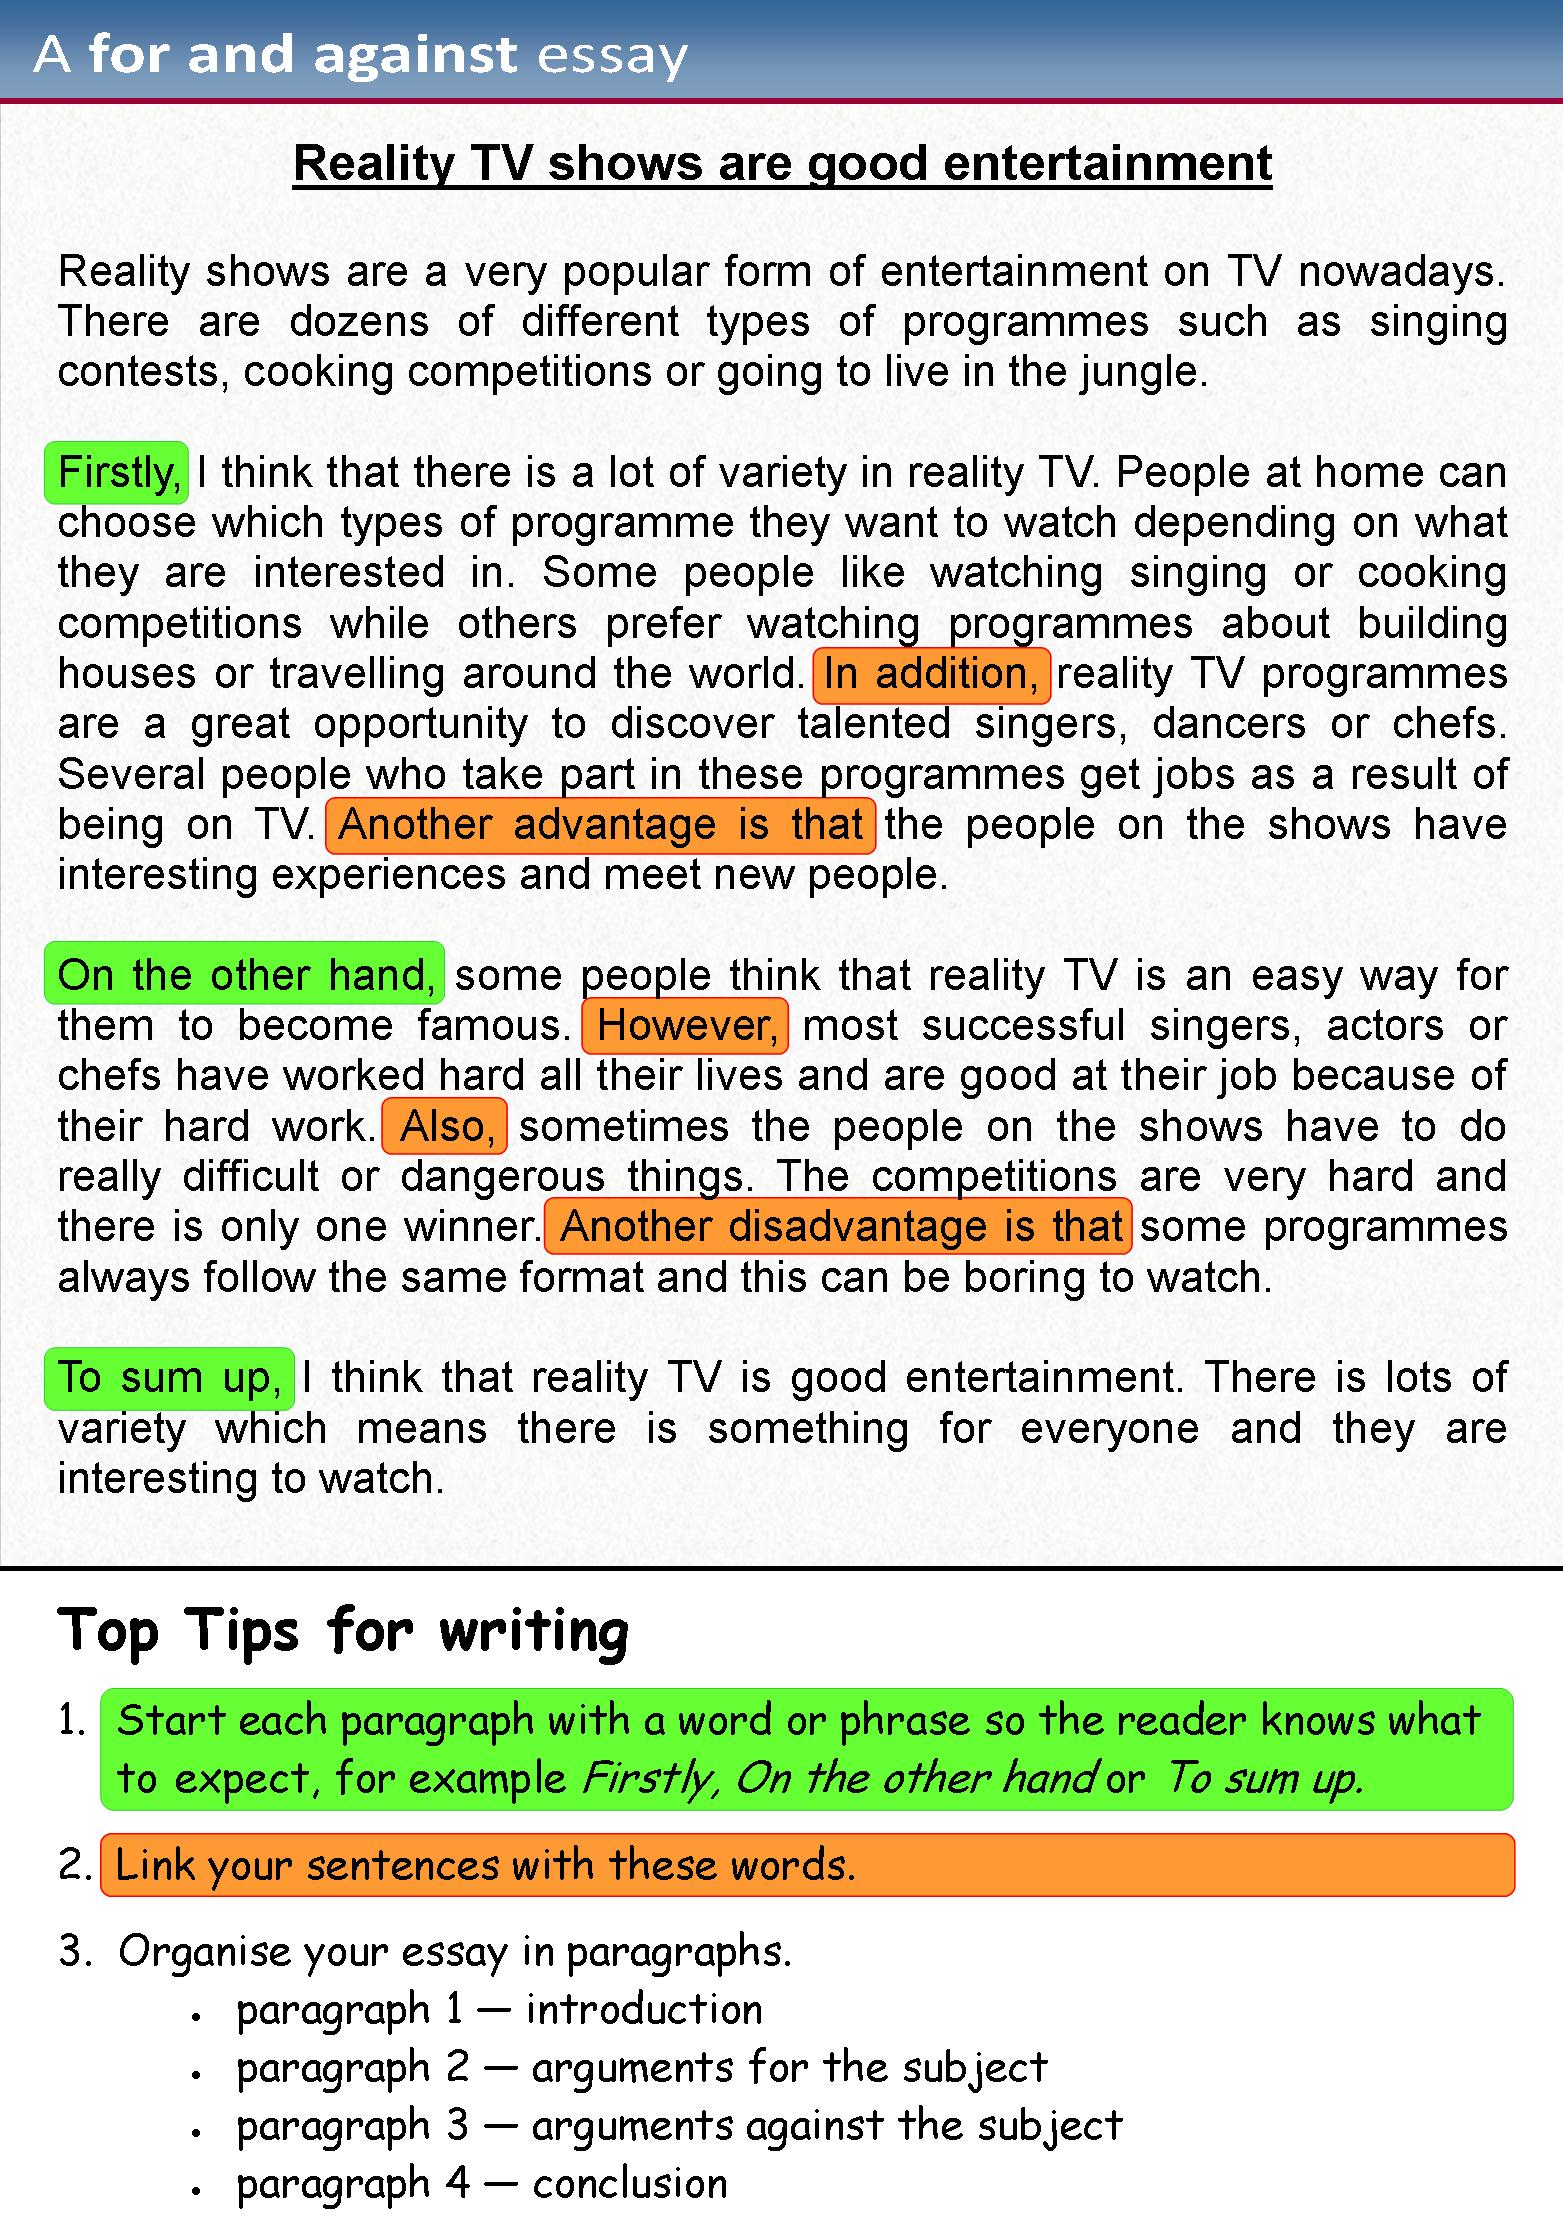 024 Tips To Write Good Essay Example For Against 1 Marvelous A Narrative Persuasive In Exam Full